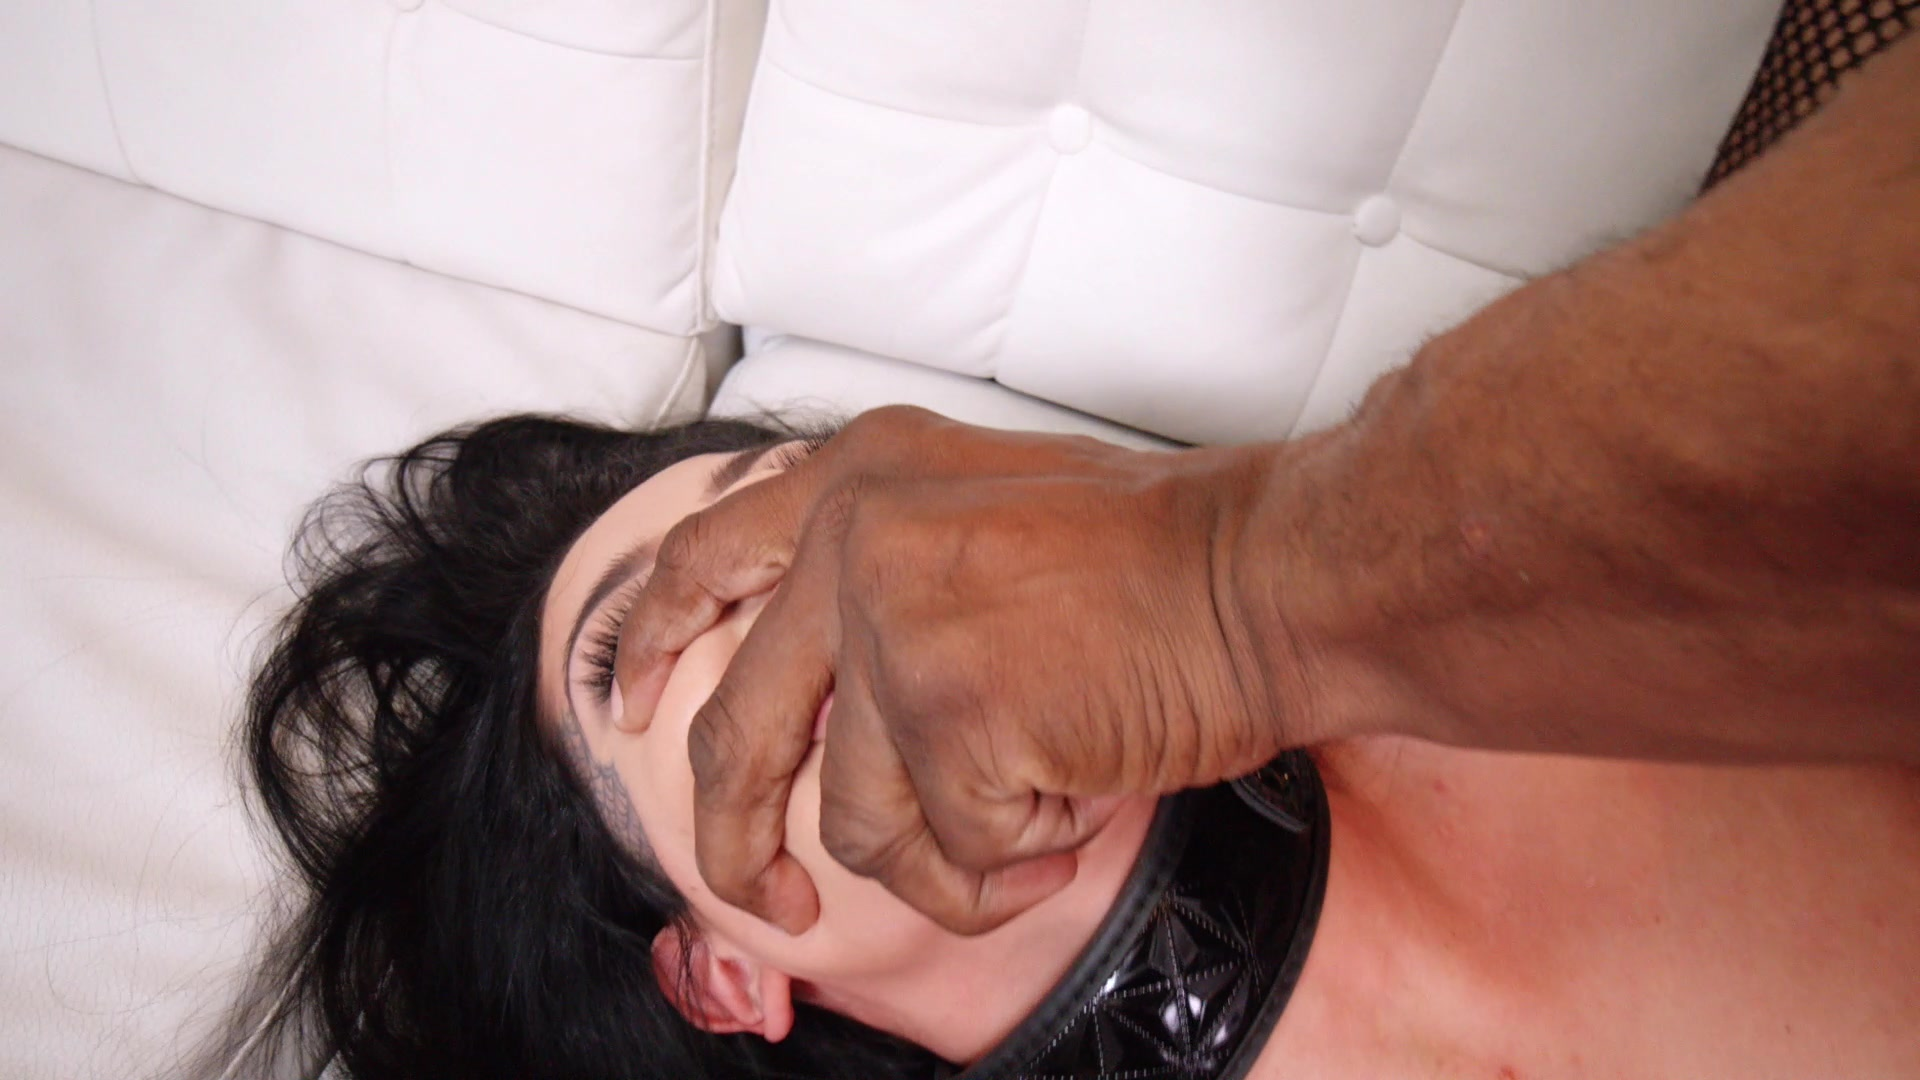 Scene with Katrina Jade - image 12 out of 20